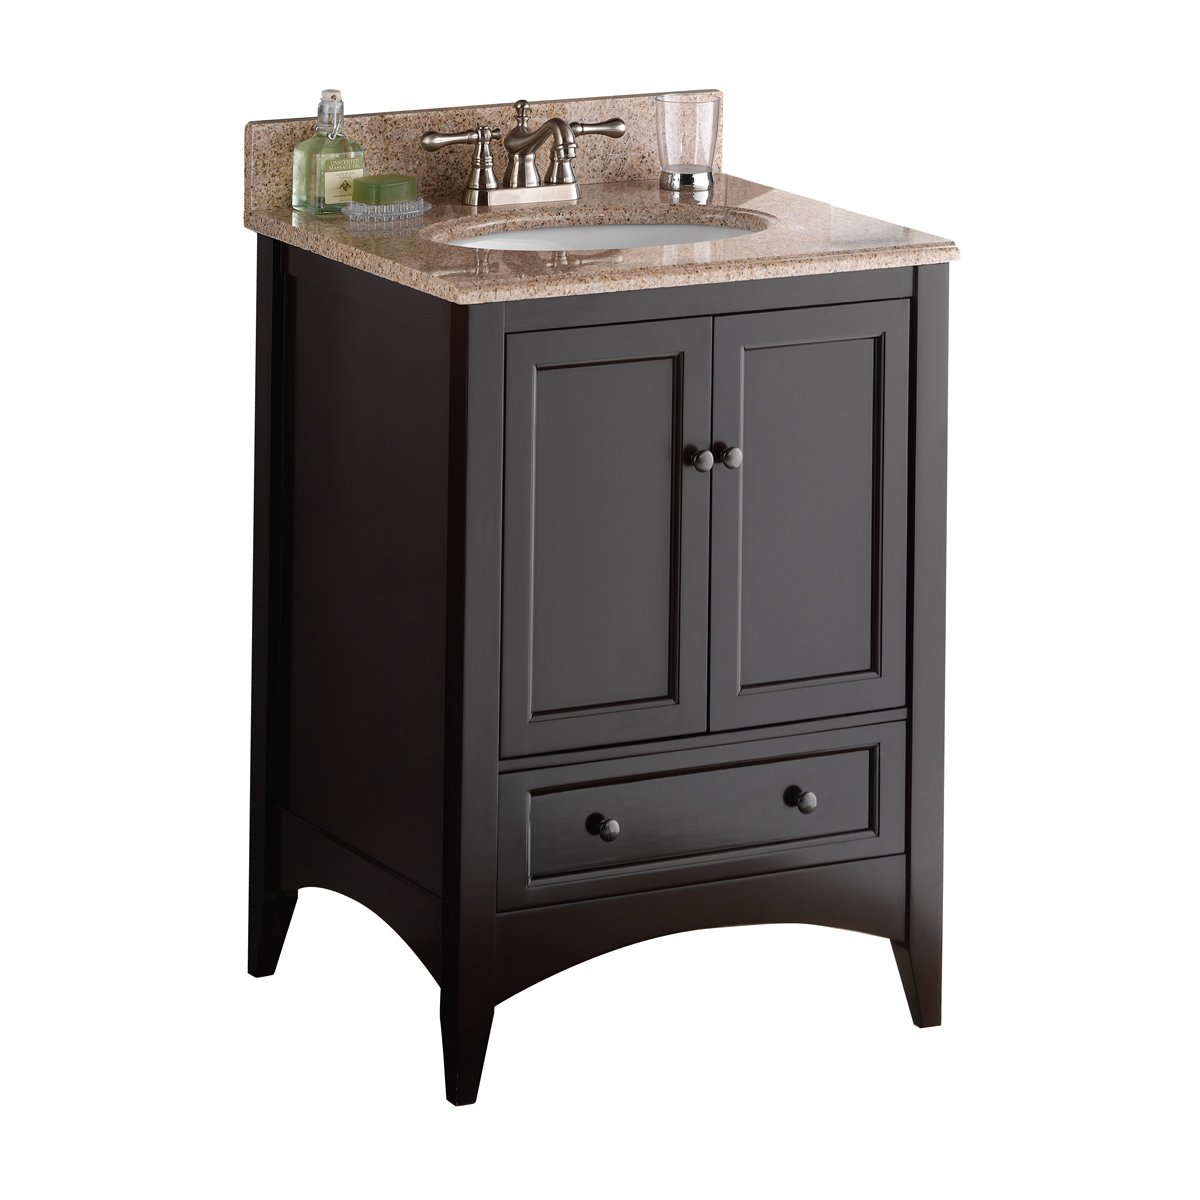 Amazing Best 25 24 Inch Bathroom Vanity Ideas On Pinterest At Vanities |  Find Your Home Inspiration, Interior Design And Home Remodeling 24 inch  bathroom ...